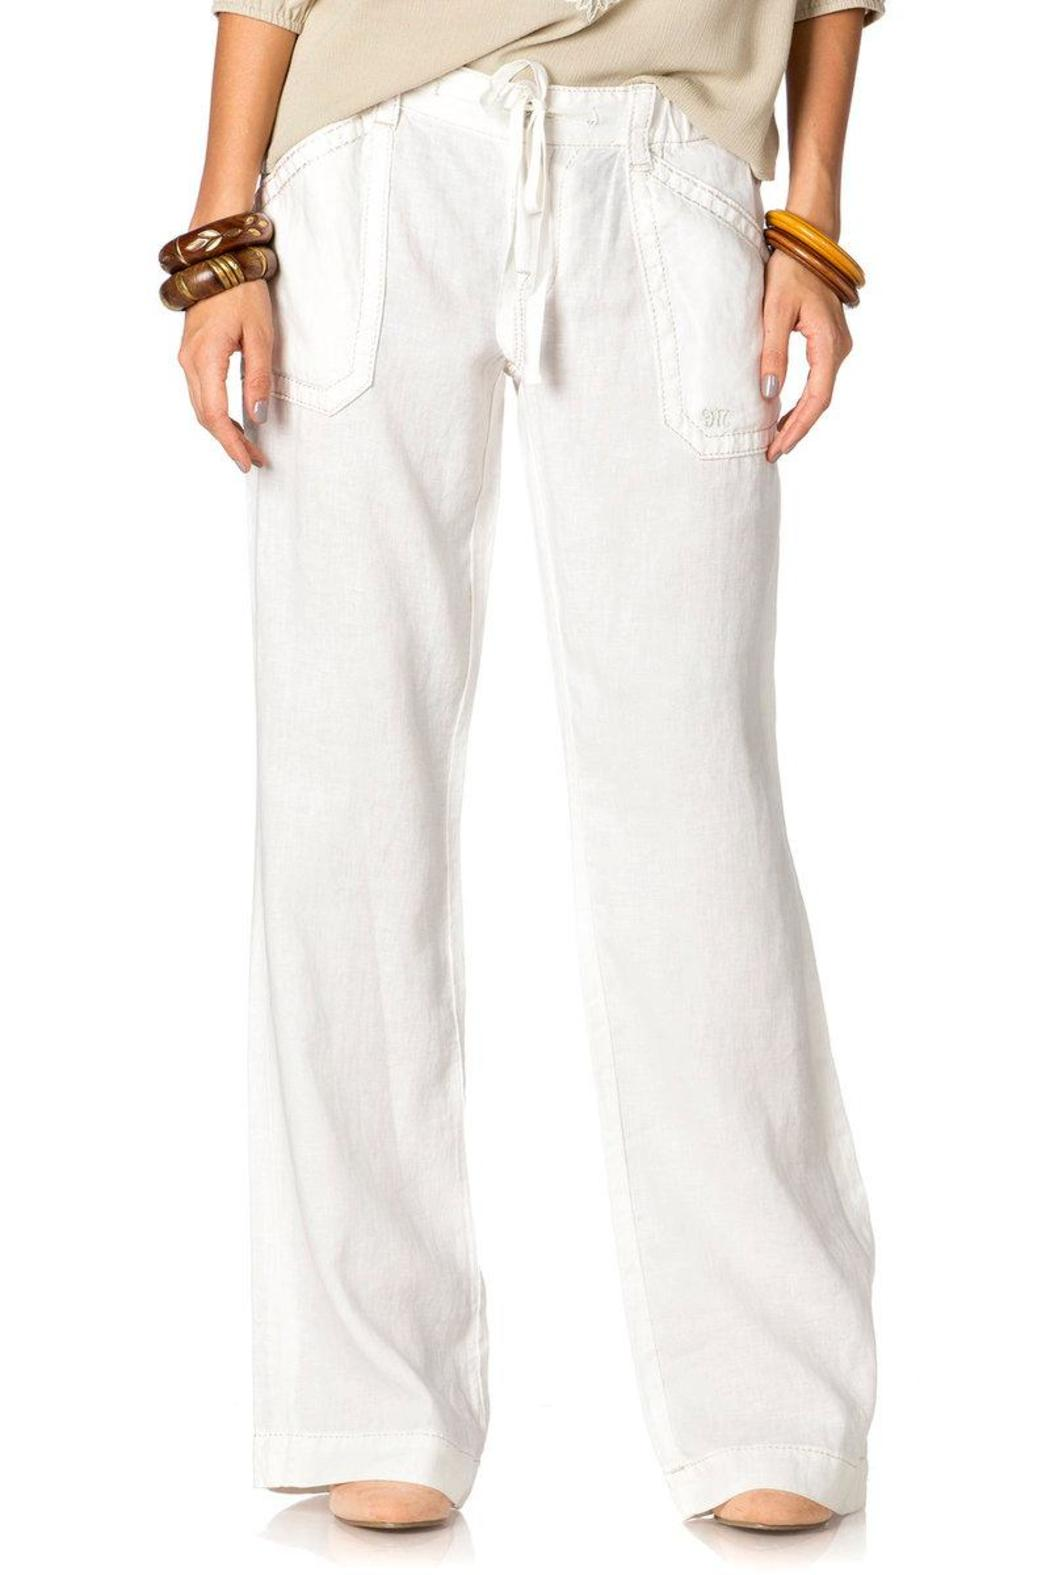 Miss Me Couture Field Day Pants - Main Image